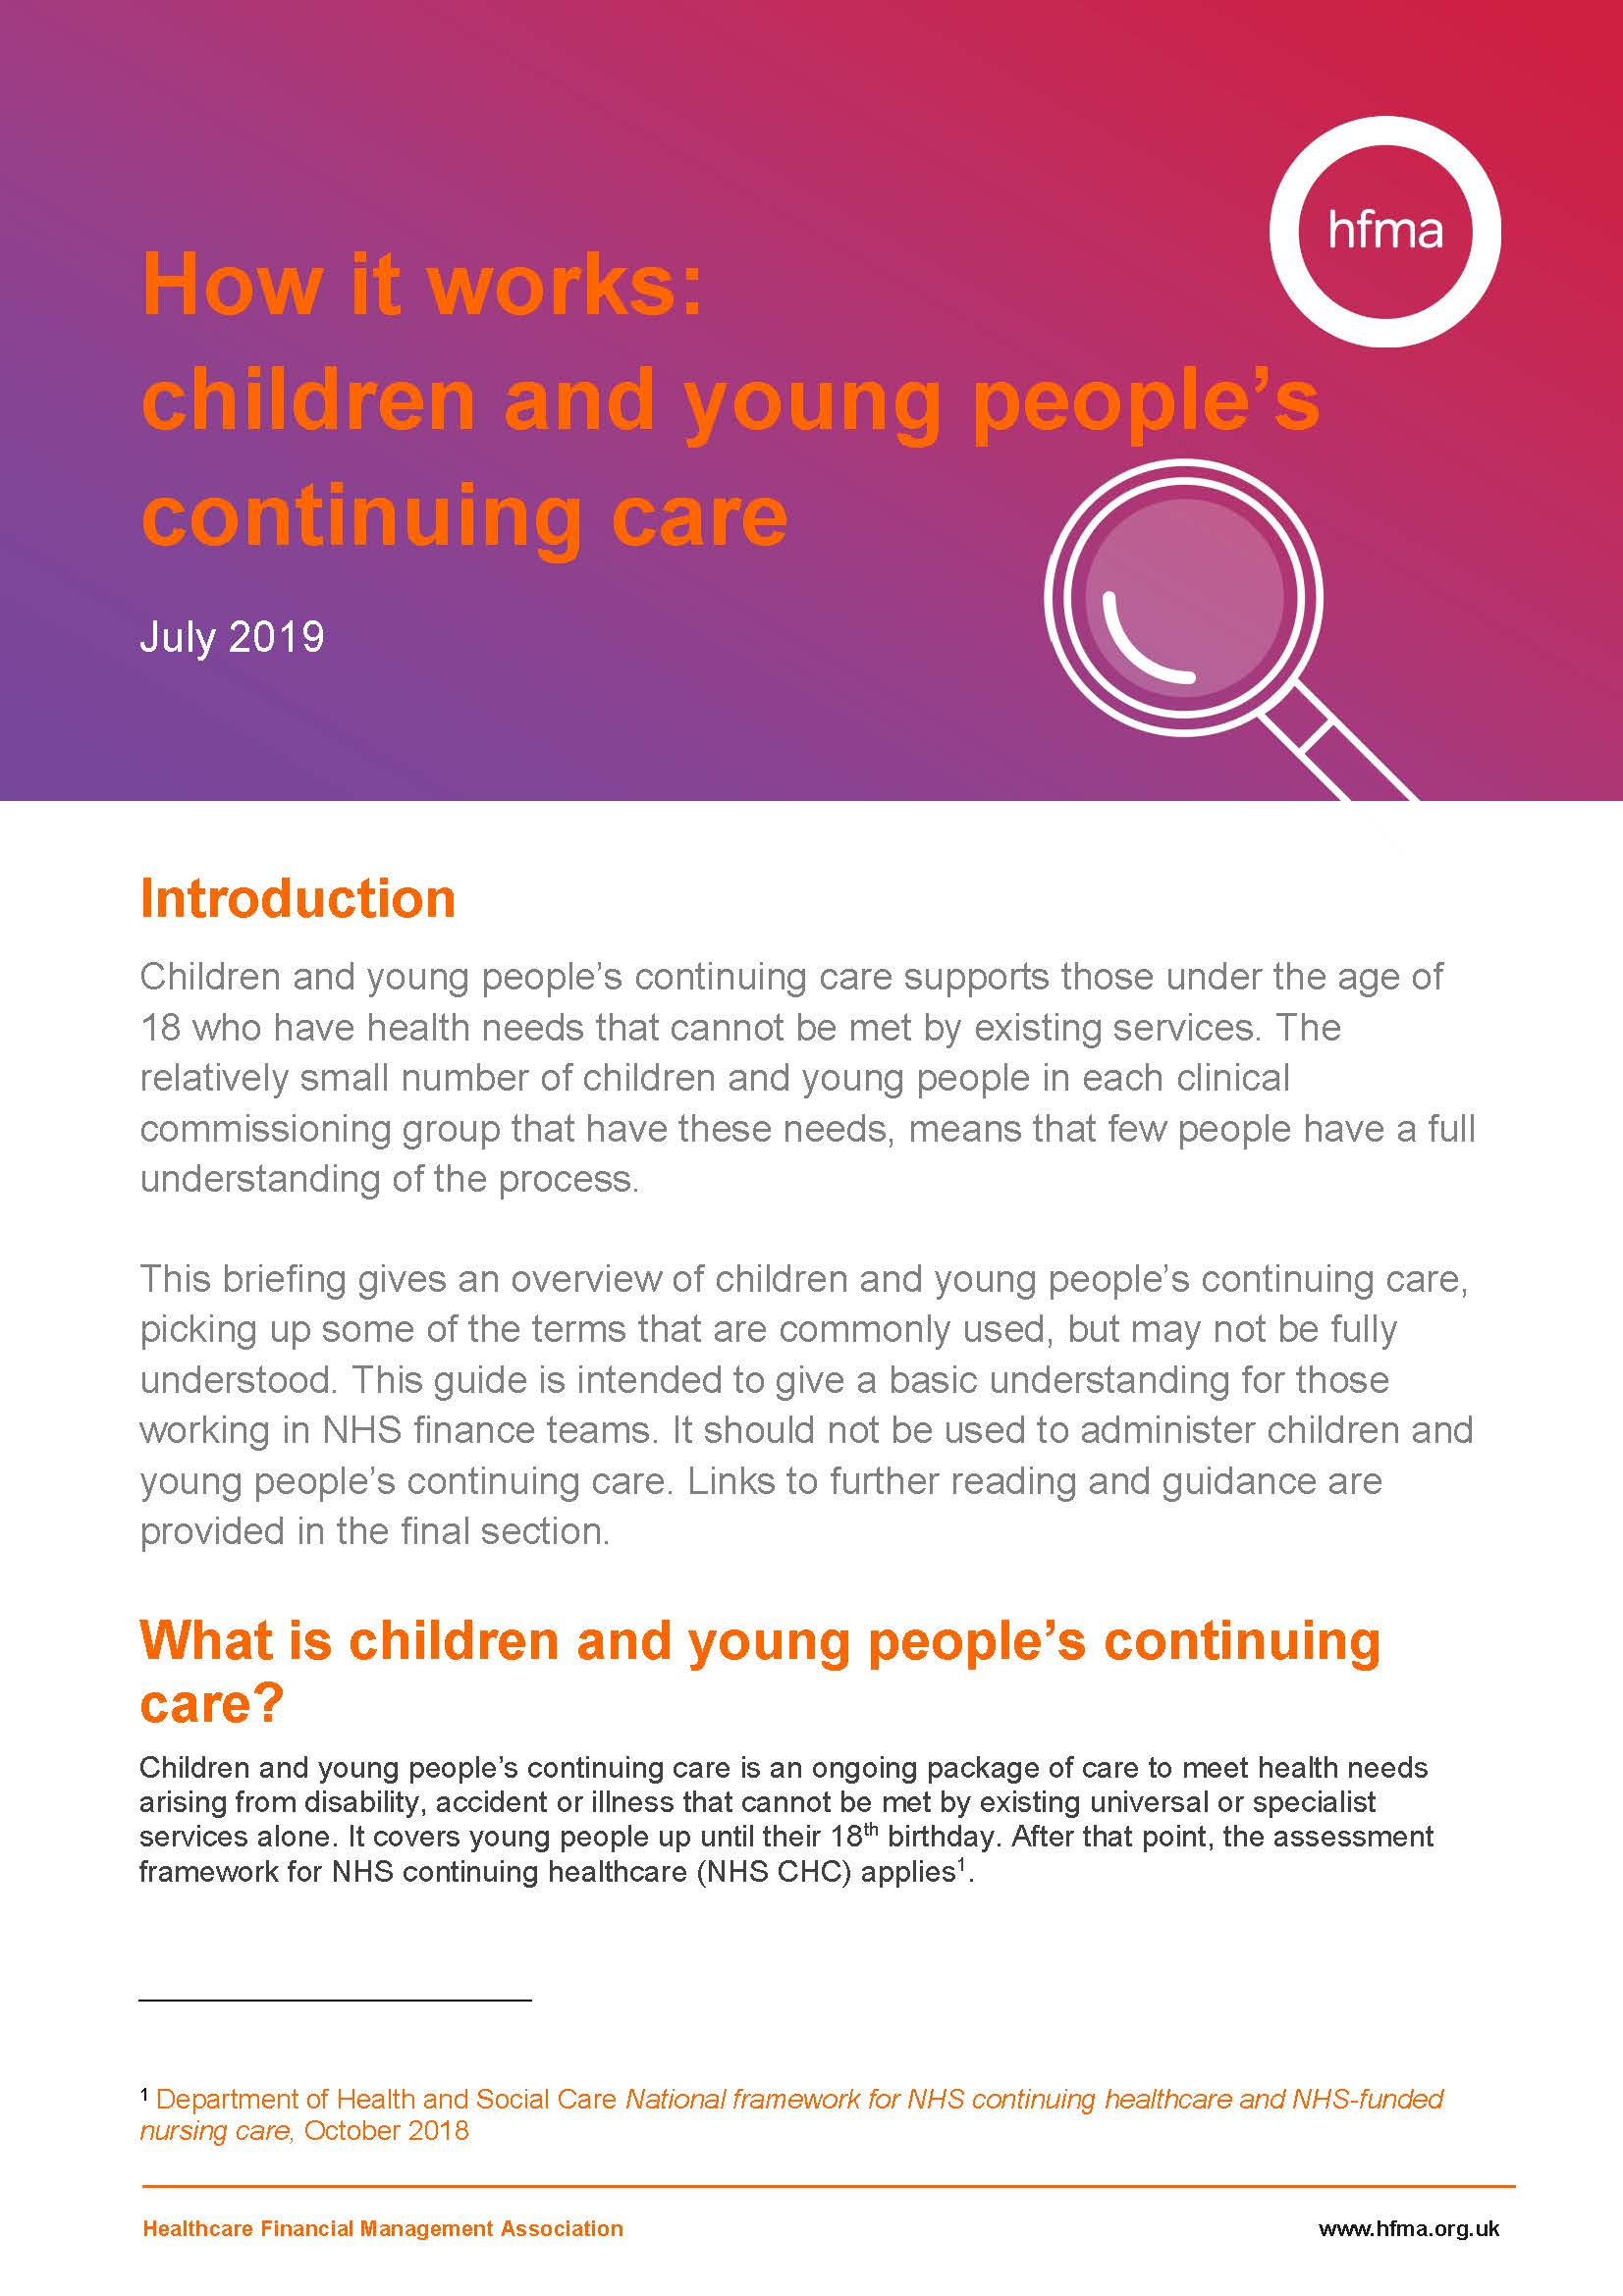 How it works – Children and young people's continuing care